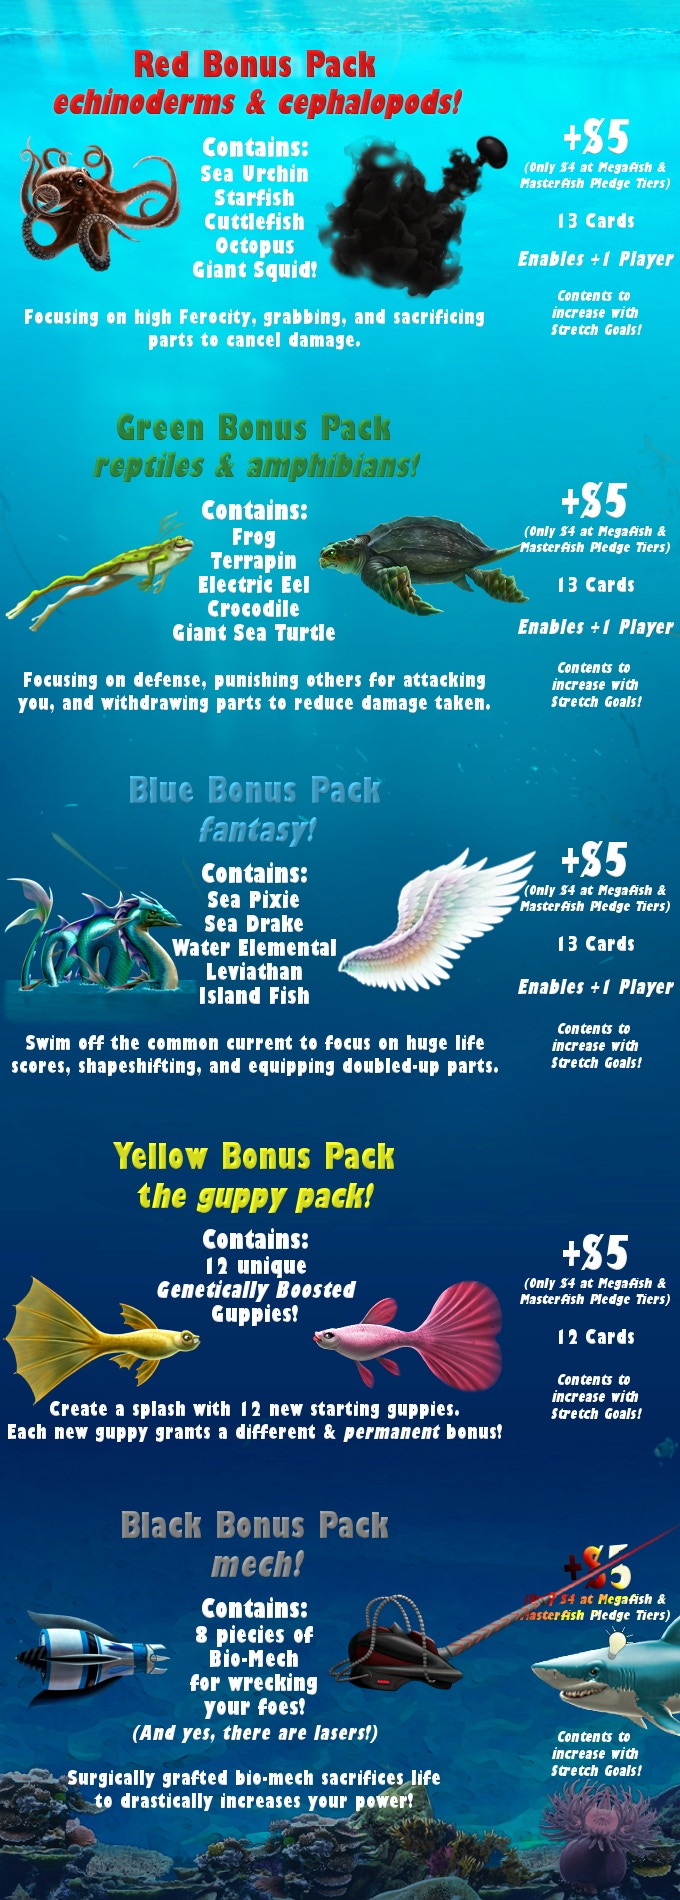 Bonus Packs - Pick and choose or save $1 each by getting them all in the Megafish & Masterfish Tiers.